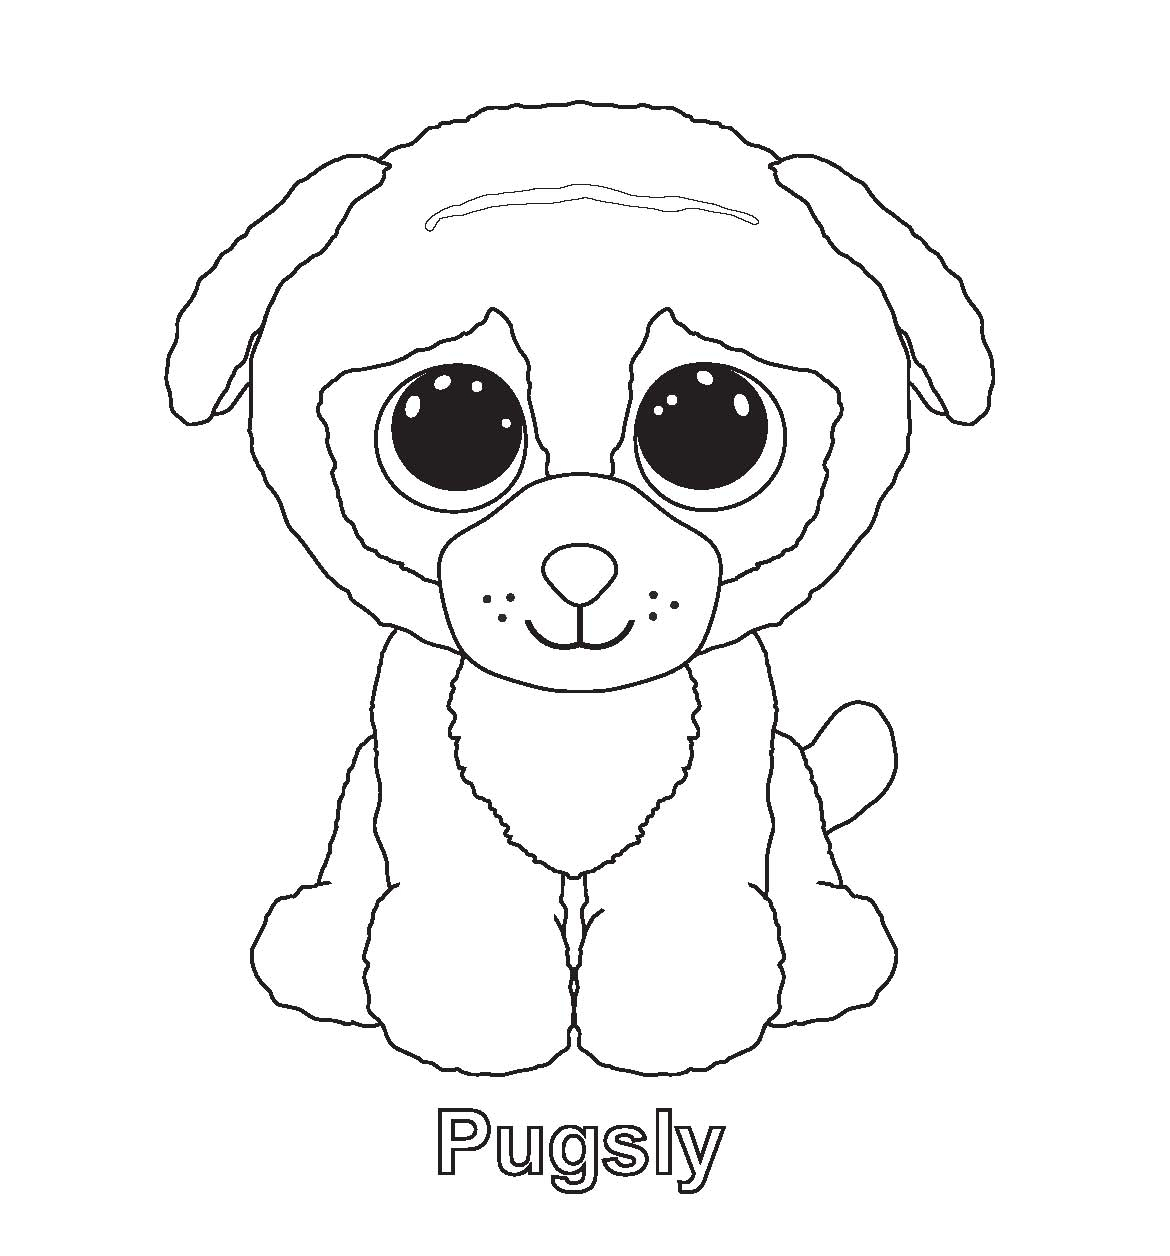 Beanie Boo Coloring Pages - Beanie Boos Coloring Pages Getcoloringpages